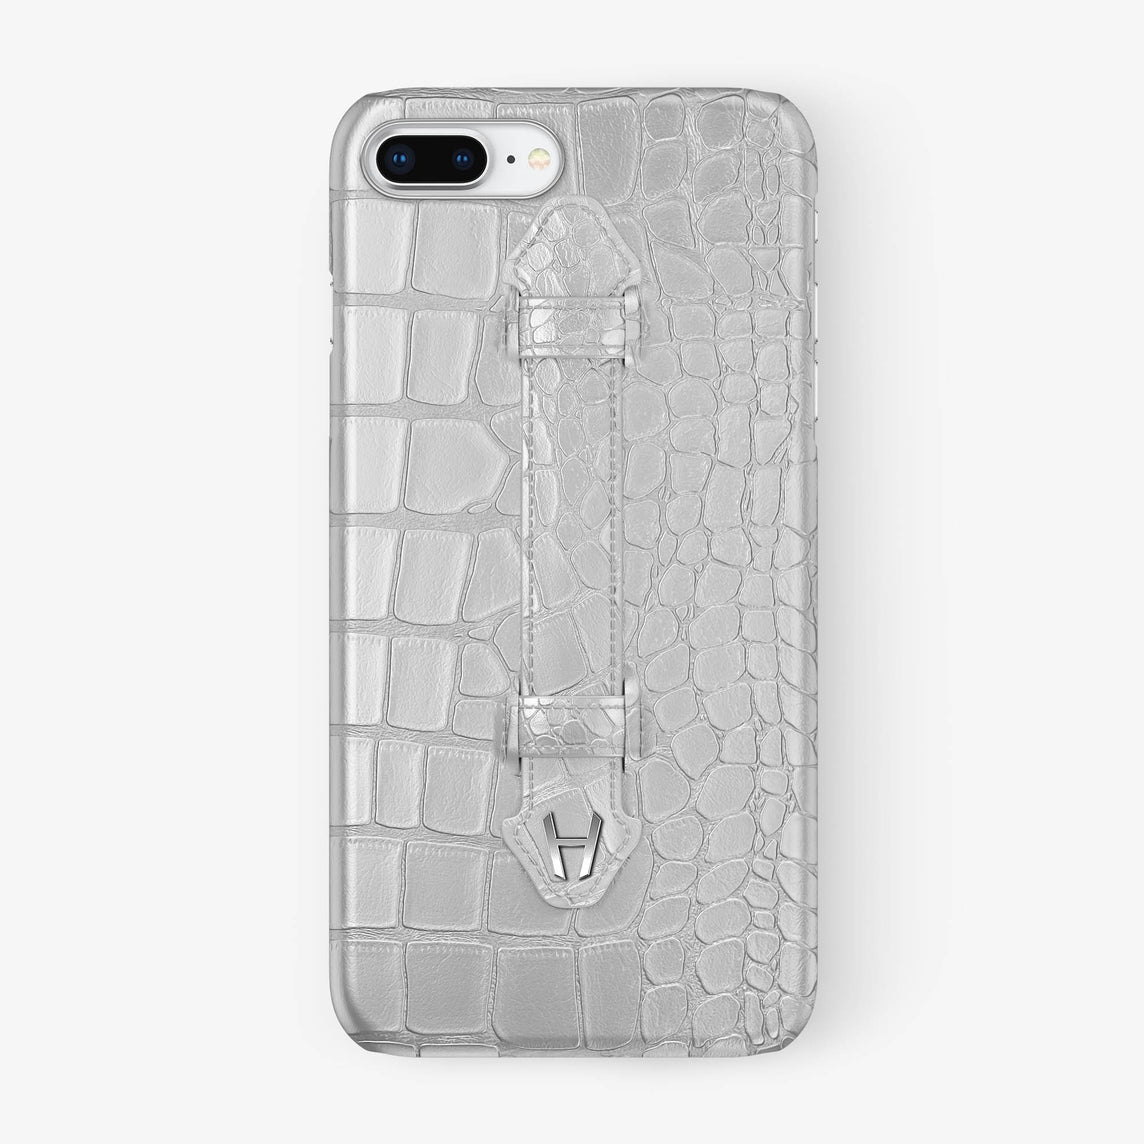 Alligator Finger Case iPhone 7/8 Plus | White - Stainless Steel